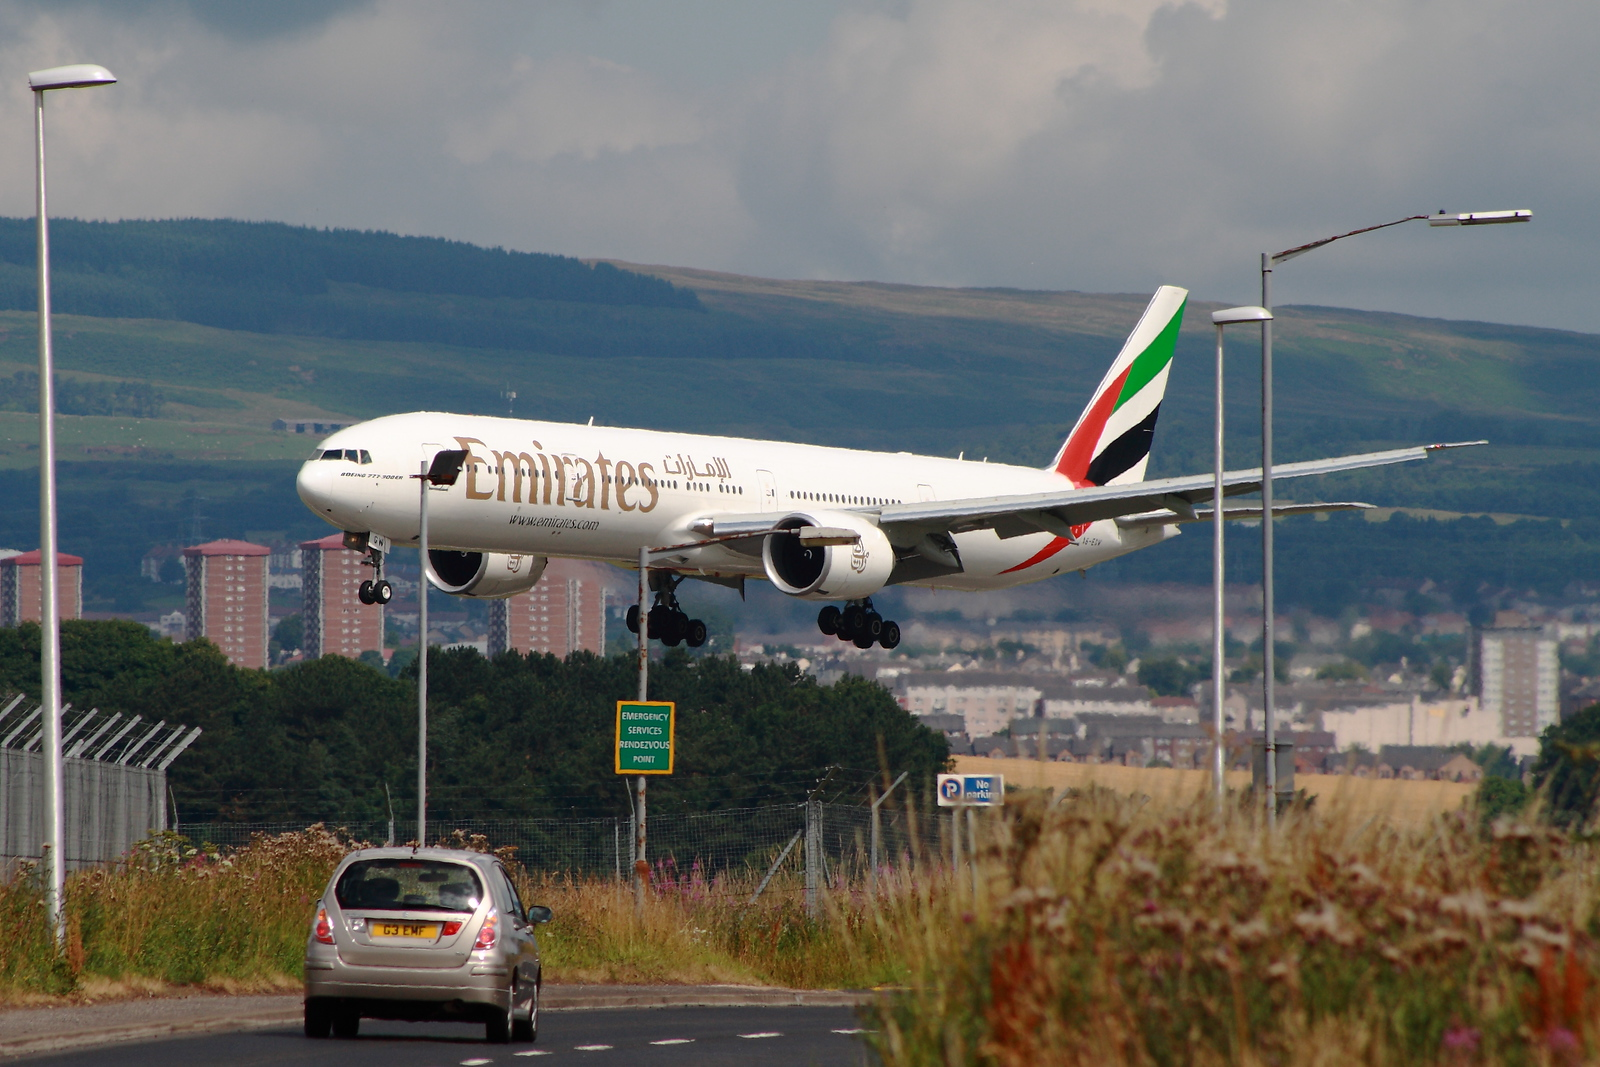 An Emirates Boeing 777-31H/ER (A6-EGP) on approach to Glasgow Airport. The car in the foreground gives an idea of just how big the B777 is.